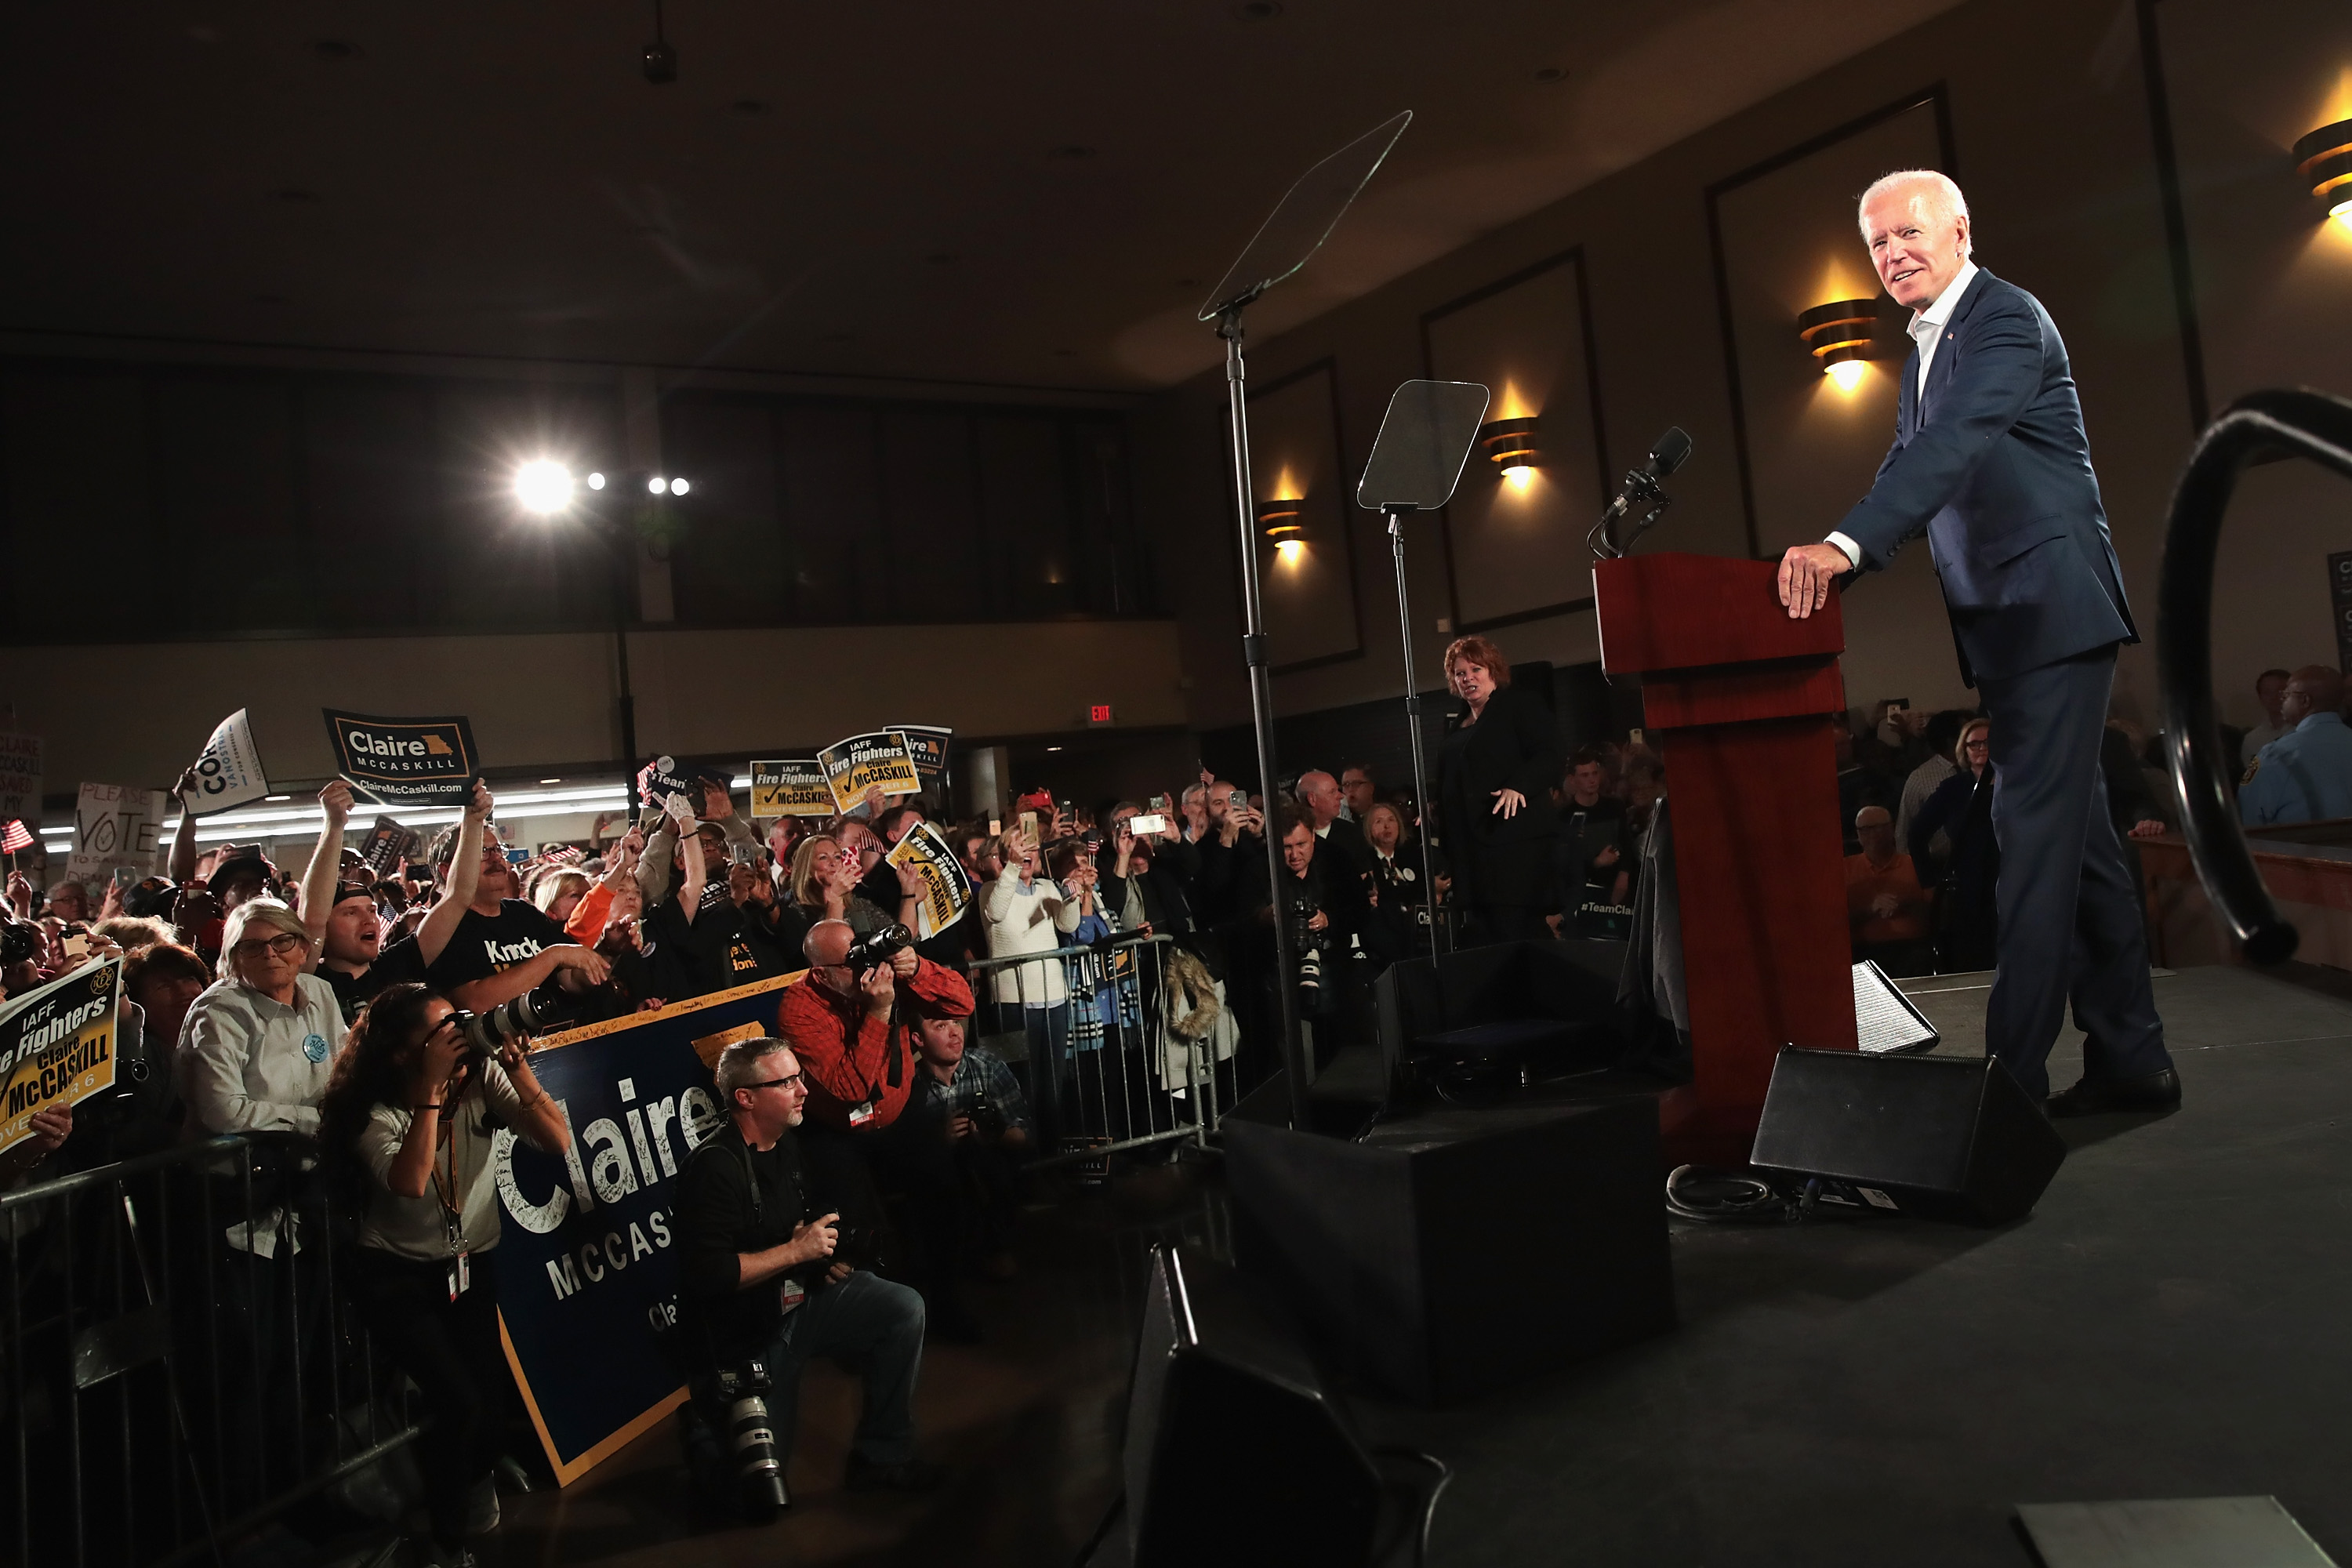 BRIDGETON, MO - OCTOBER 31:  Former Vice President Joe Biden speaks to supporters of Senator Claire McCaskill at a  get out the vote  rally which on October 31, 2018 in Bridgeton, Missouri. McCaskill is in a tight race with her Republican challenger Missouri Attorney General Josh Hawley.  (Photo by Scott Olson/Getty Images)